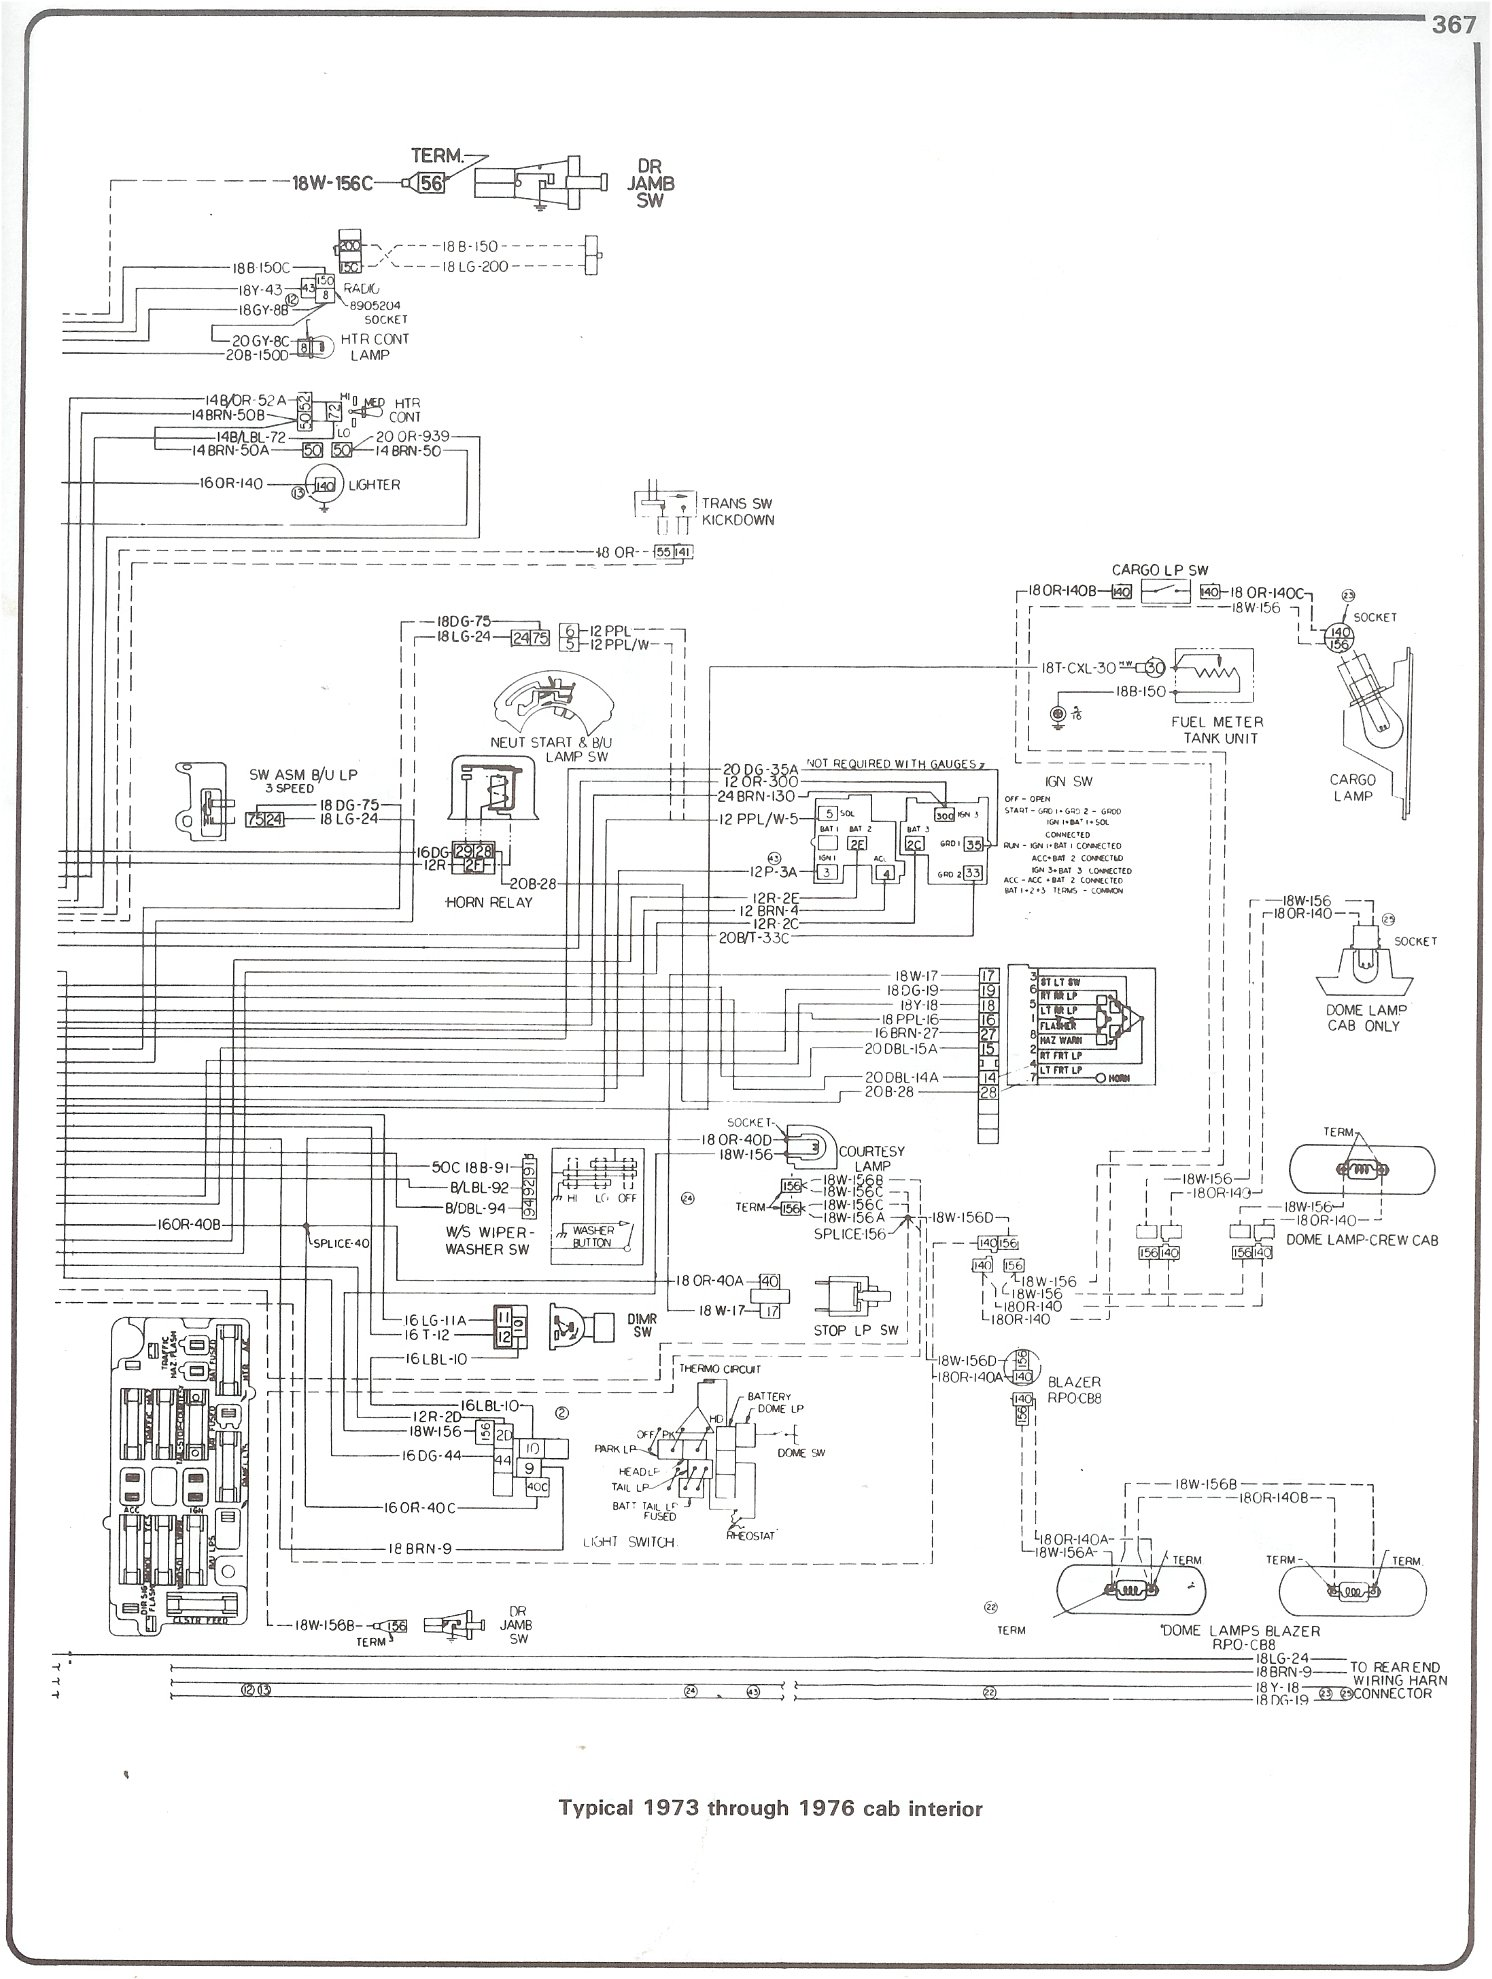 1983 K10 Chevy Suburban Wiring Diagrams 73